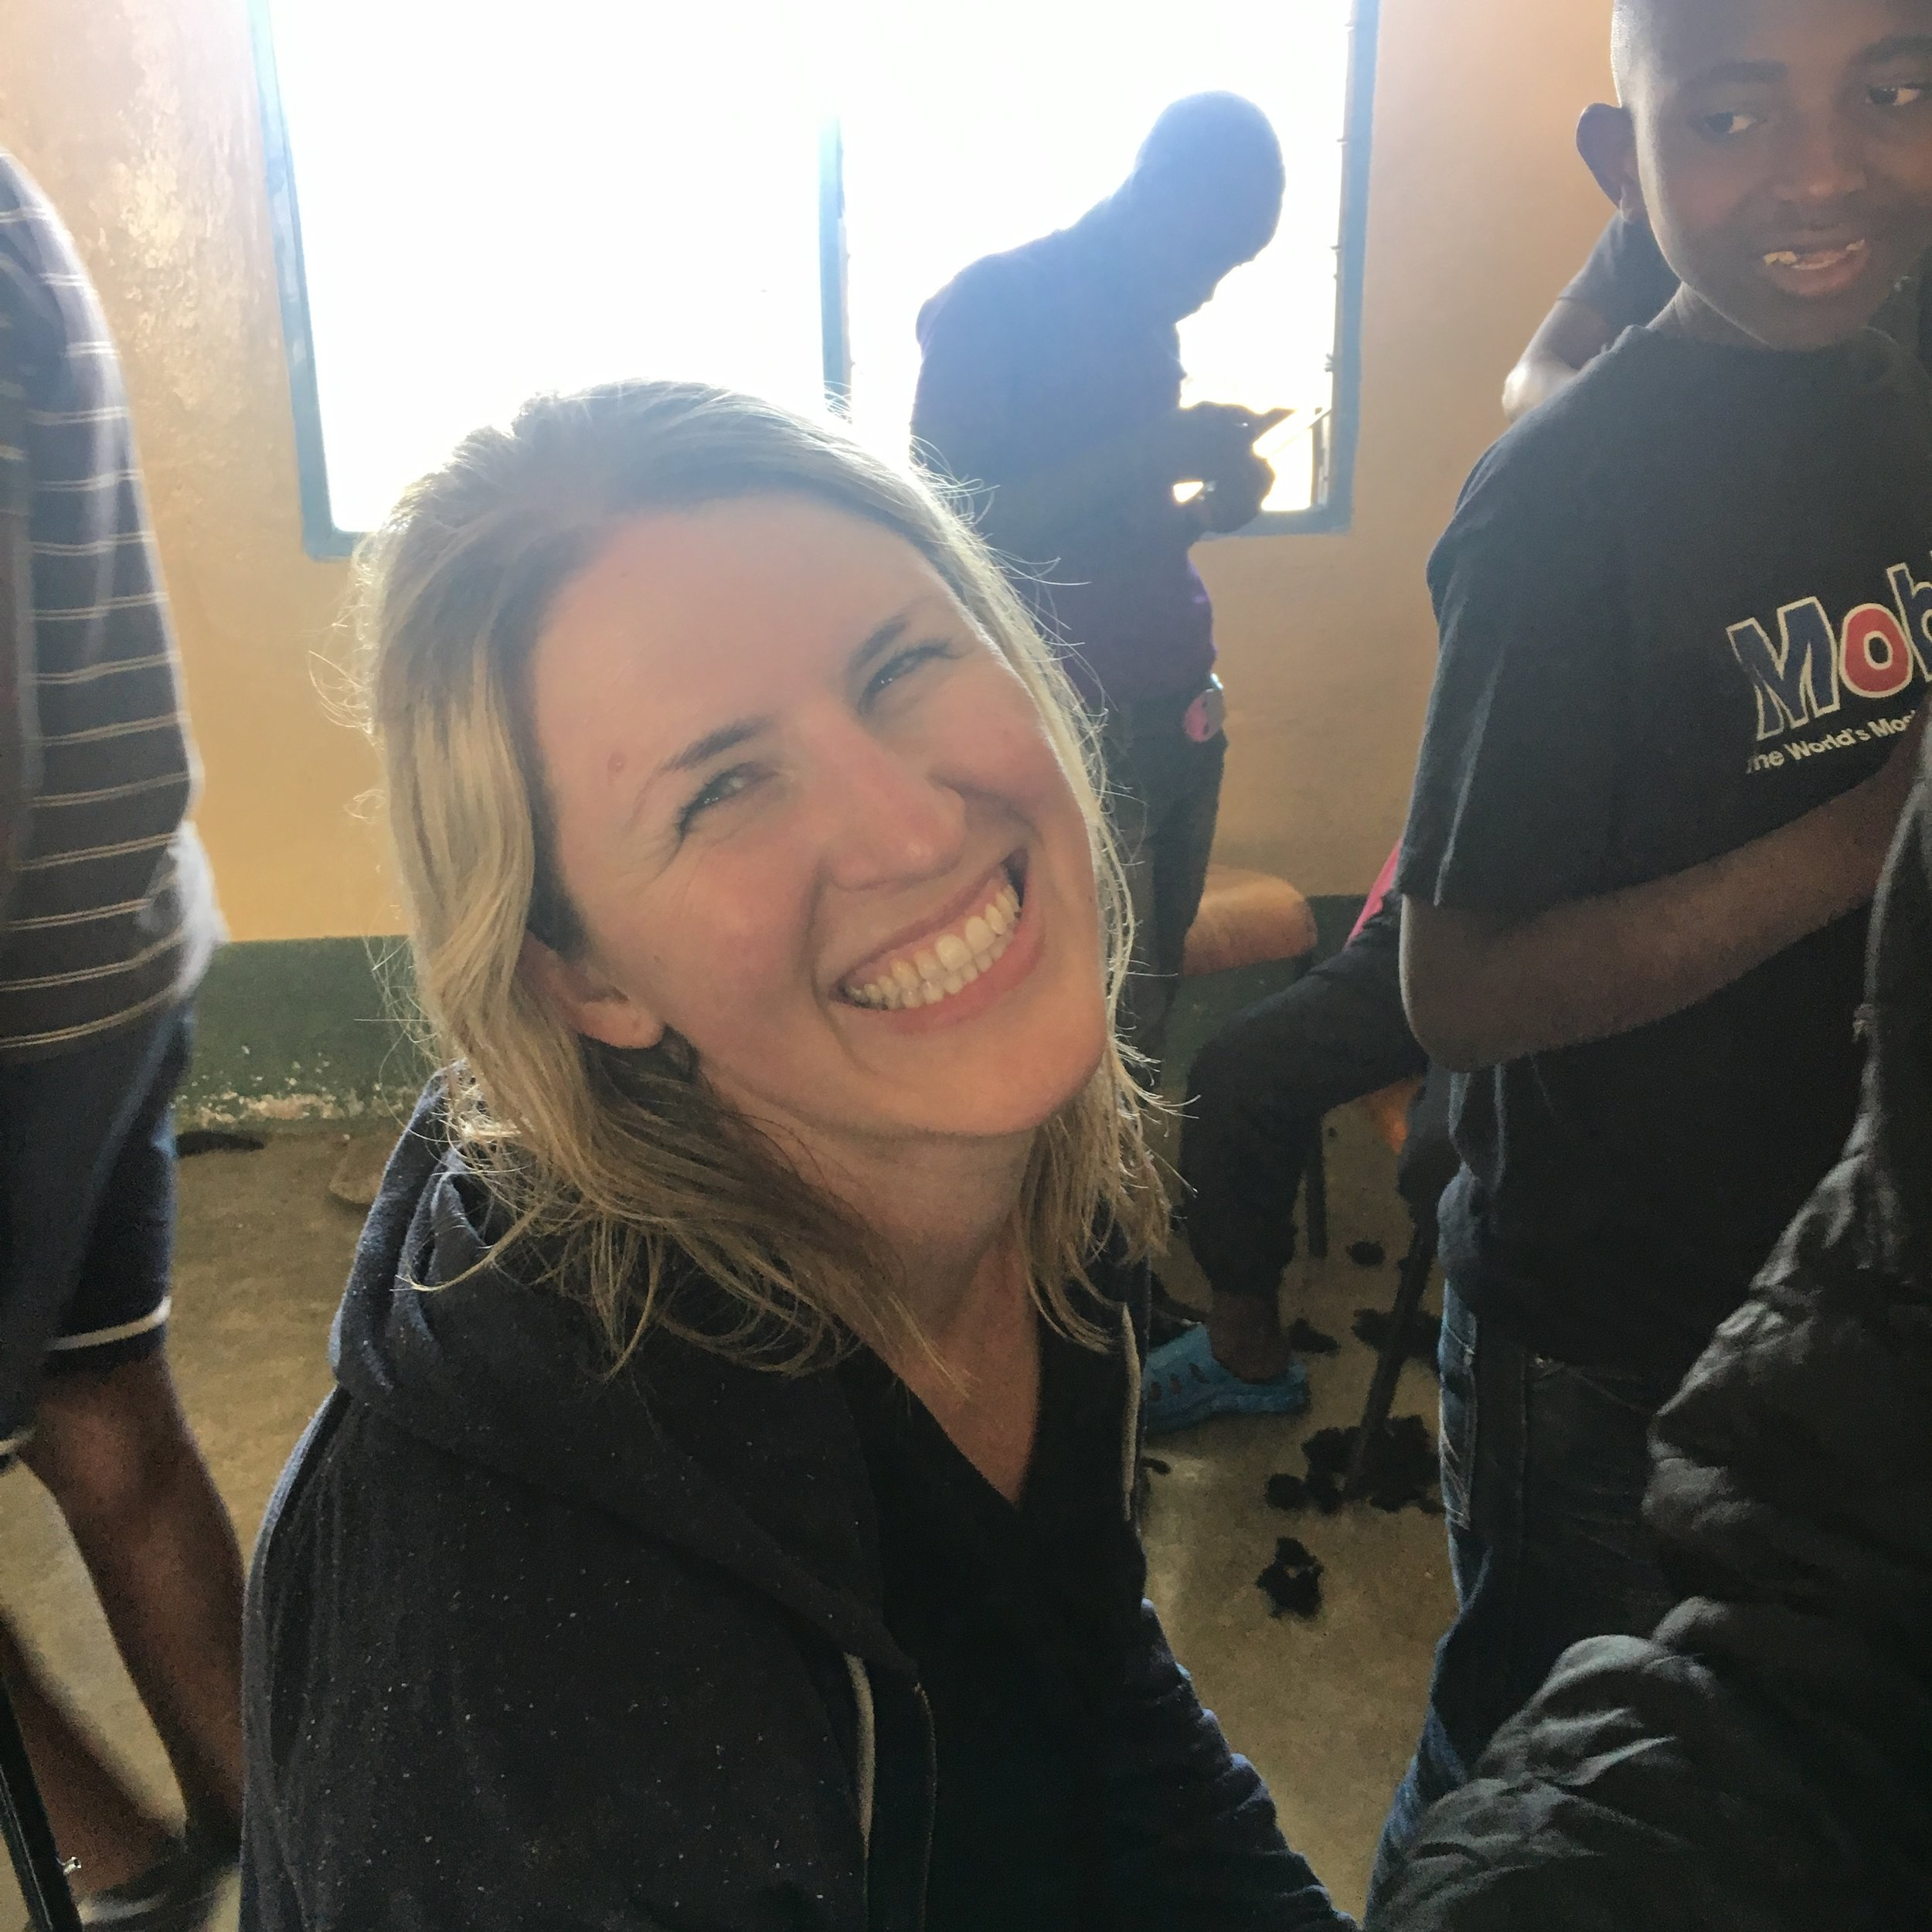 In March 2017, Janell Simmons spent almost a month volunteering at the Naivasha Children's Shelter. She helped train staff in counseling and social work, and participated in our annual rescue.